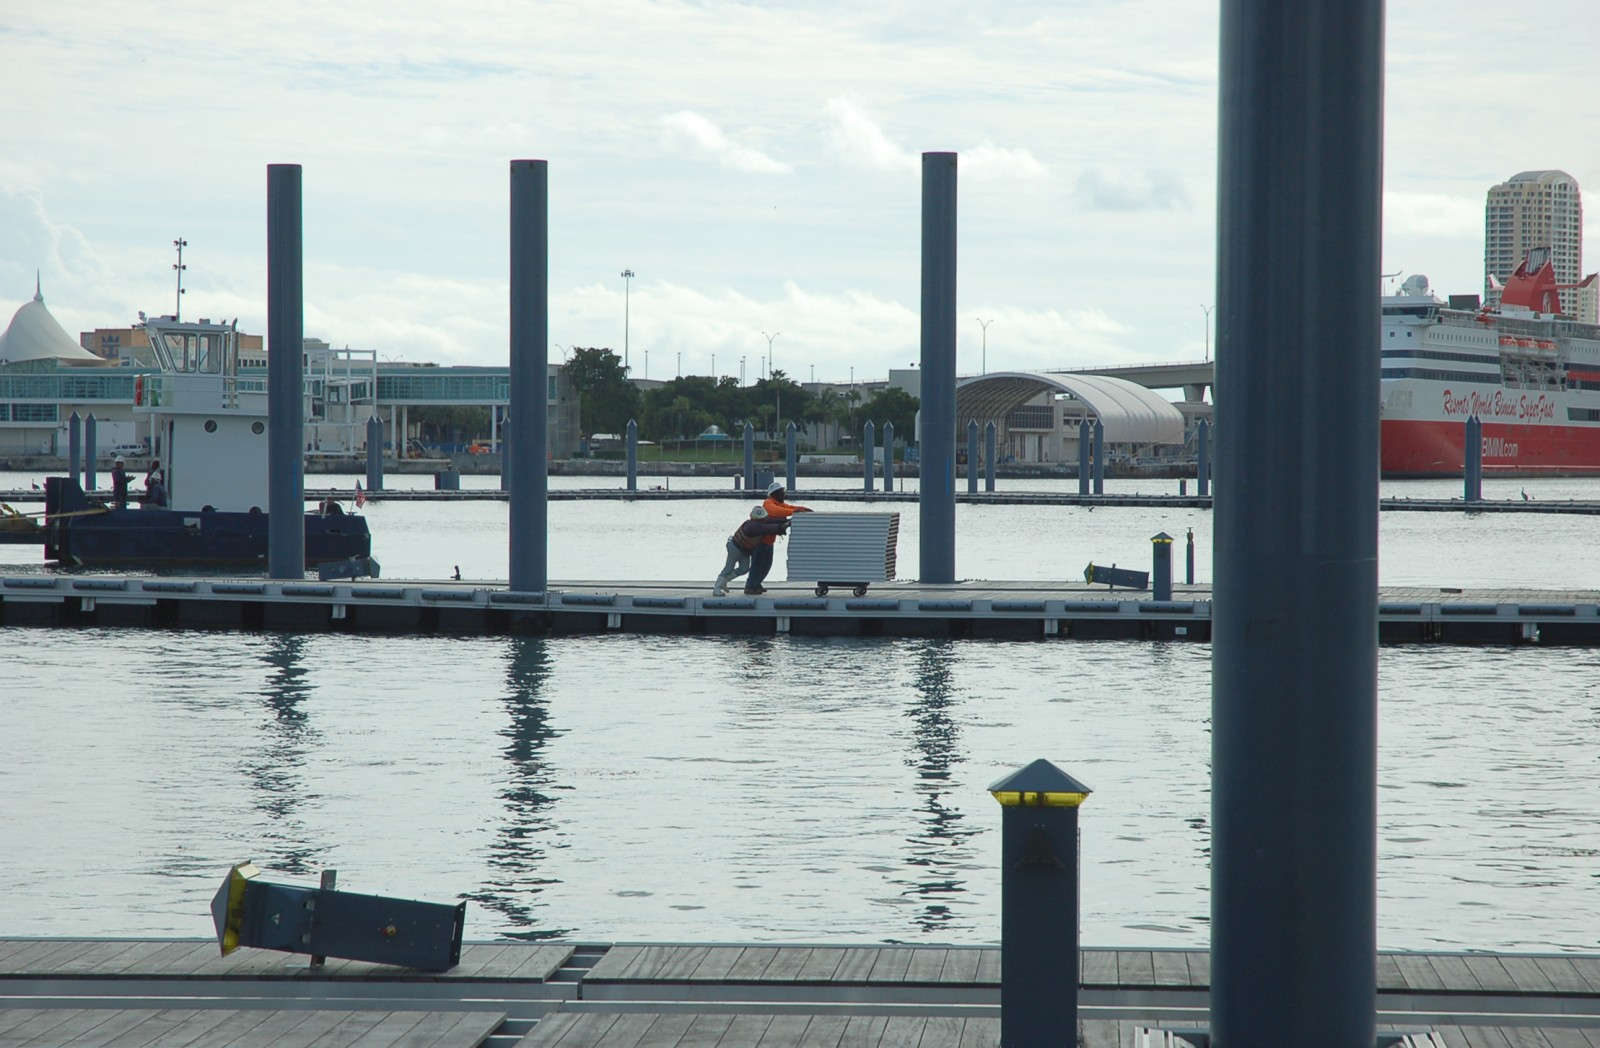 Work continues at Island Gardens Deep Harbour, the marina at the future Island Gardens on Watson Island in Miami. PHOTO/DORIE COX